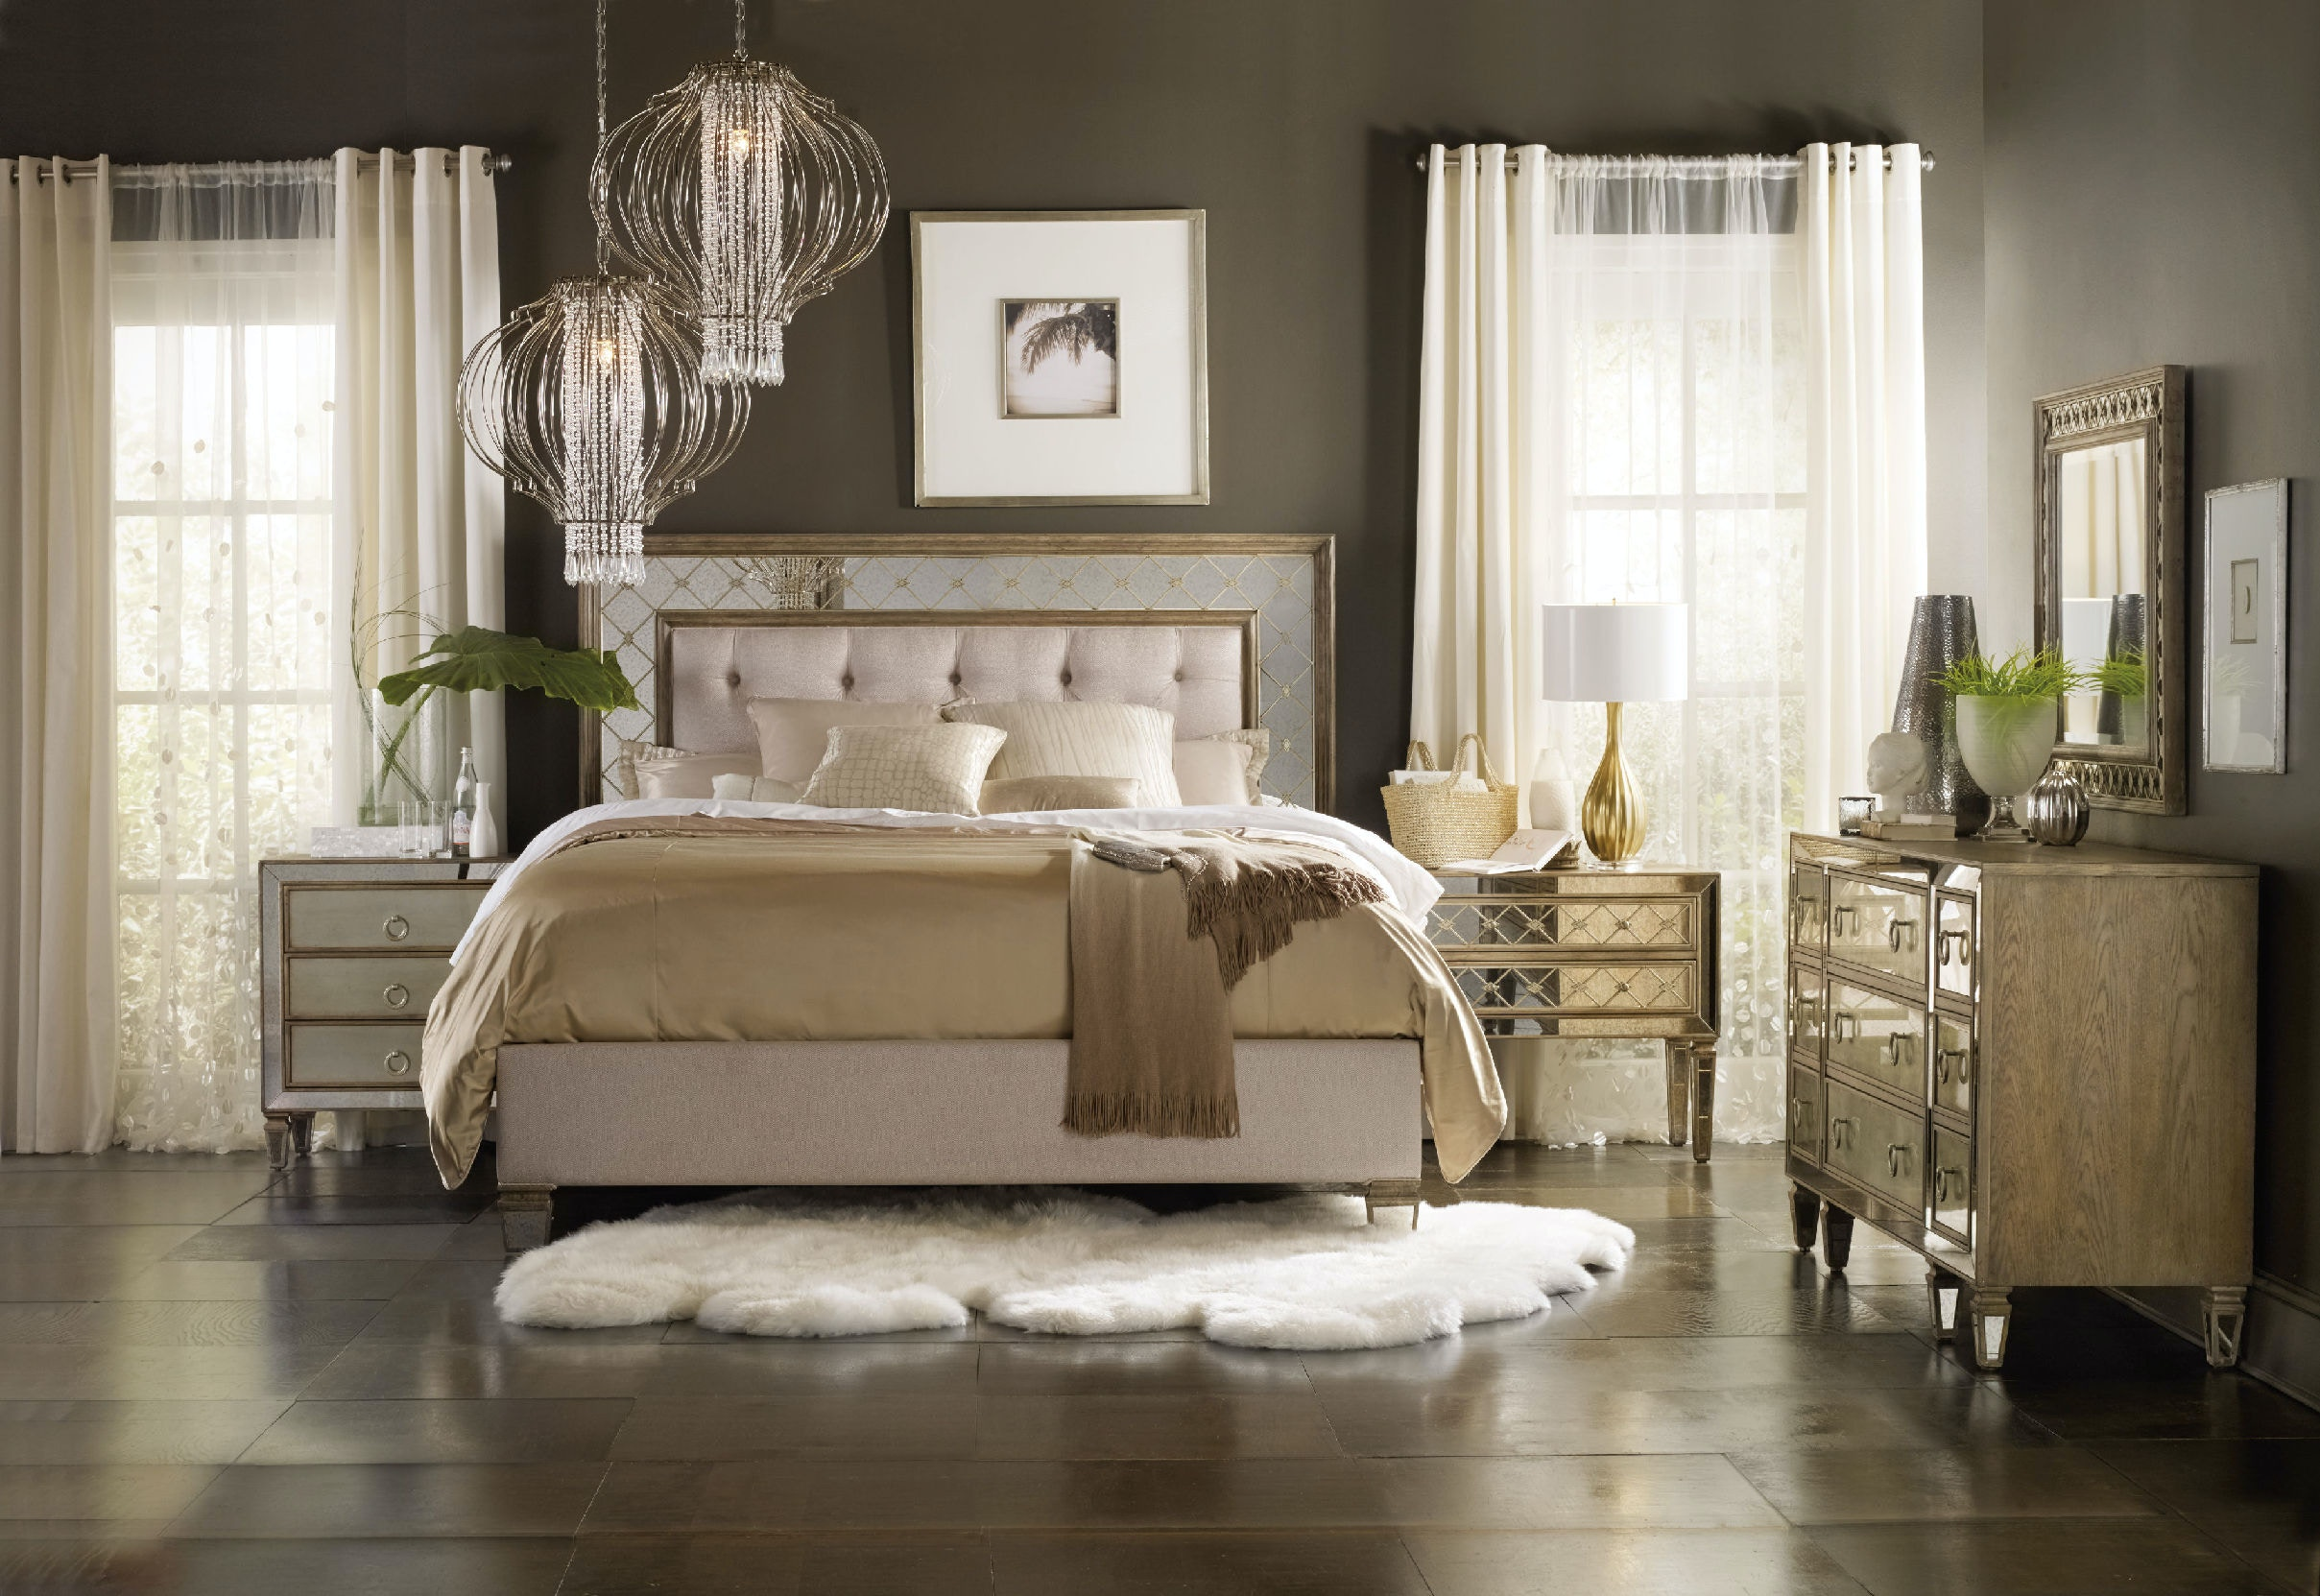 hooker furniture sanctuary king mirrored upholstered bed 5414 90866 - Mirrored Bed Frame